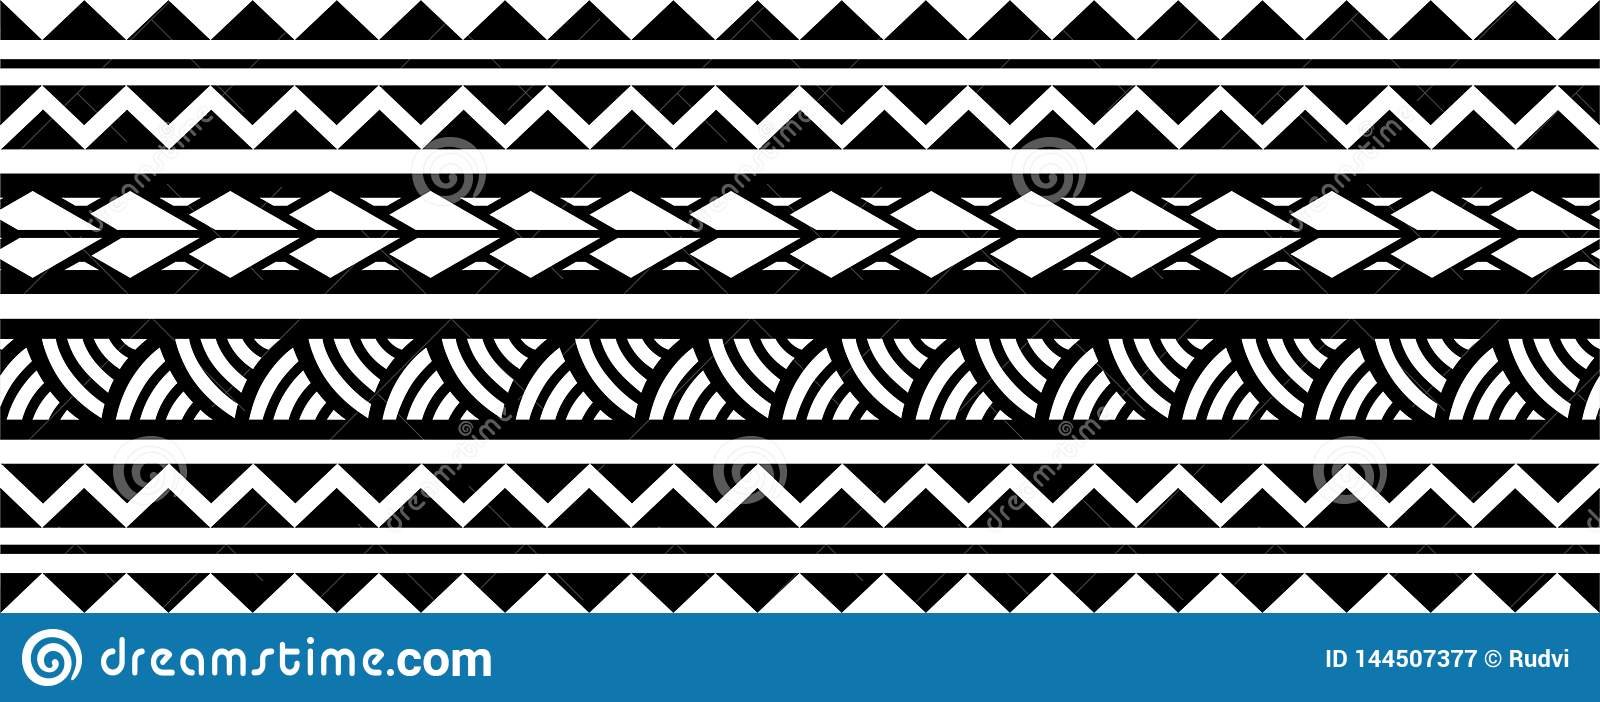 f04a28d3fb343 Polynesian tattoo sleeve pattern vector, samoan sketch forearm and foot  design, maori stencil bracelet armband tattoo tribal, band fabric template  seamless ...